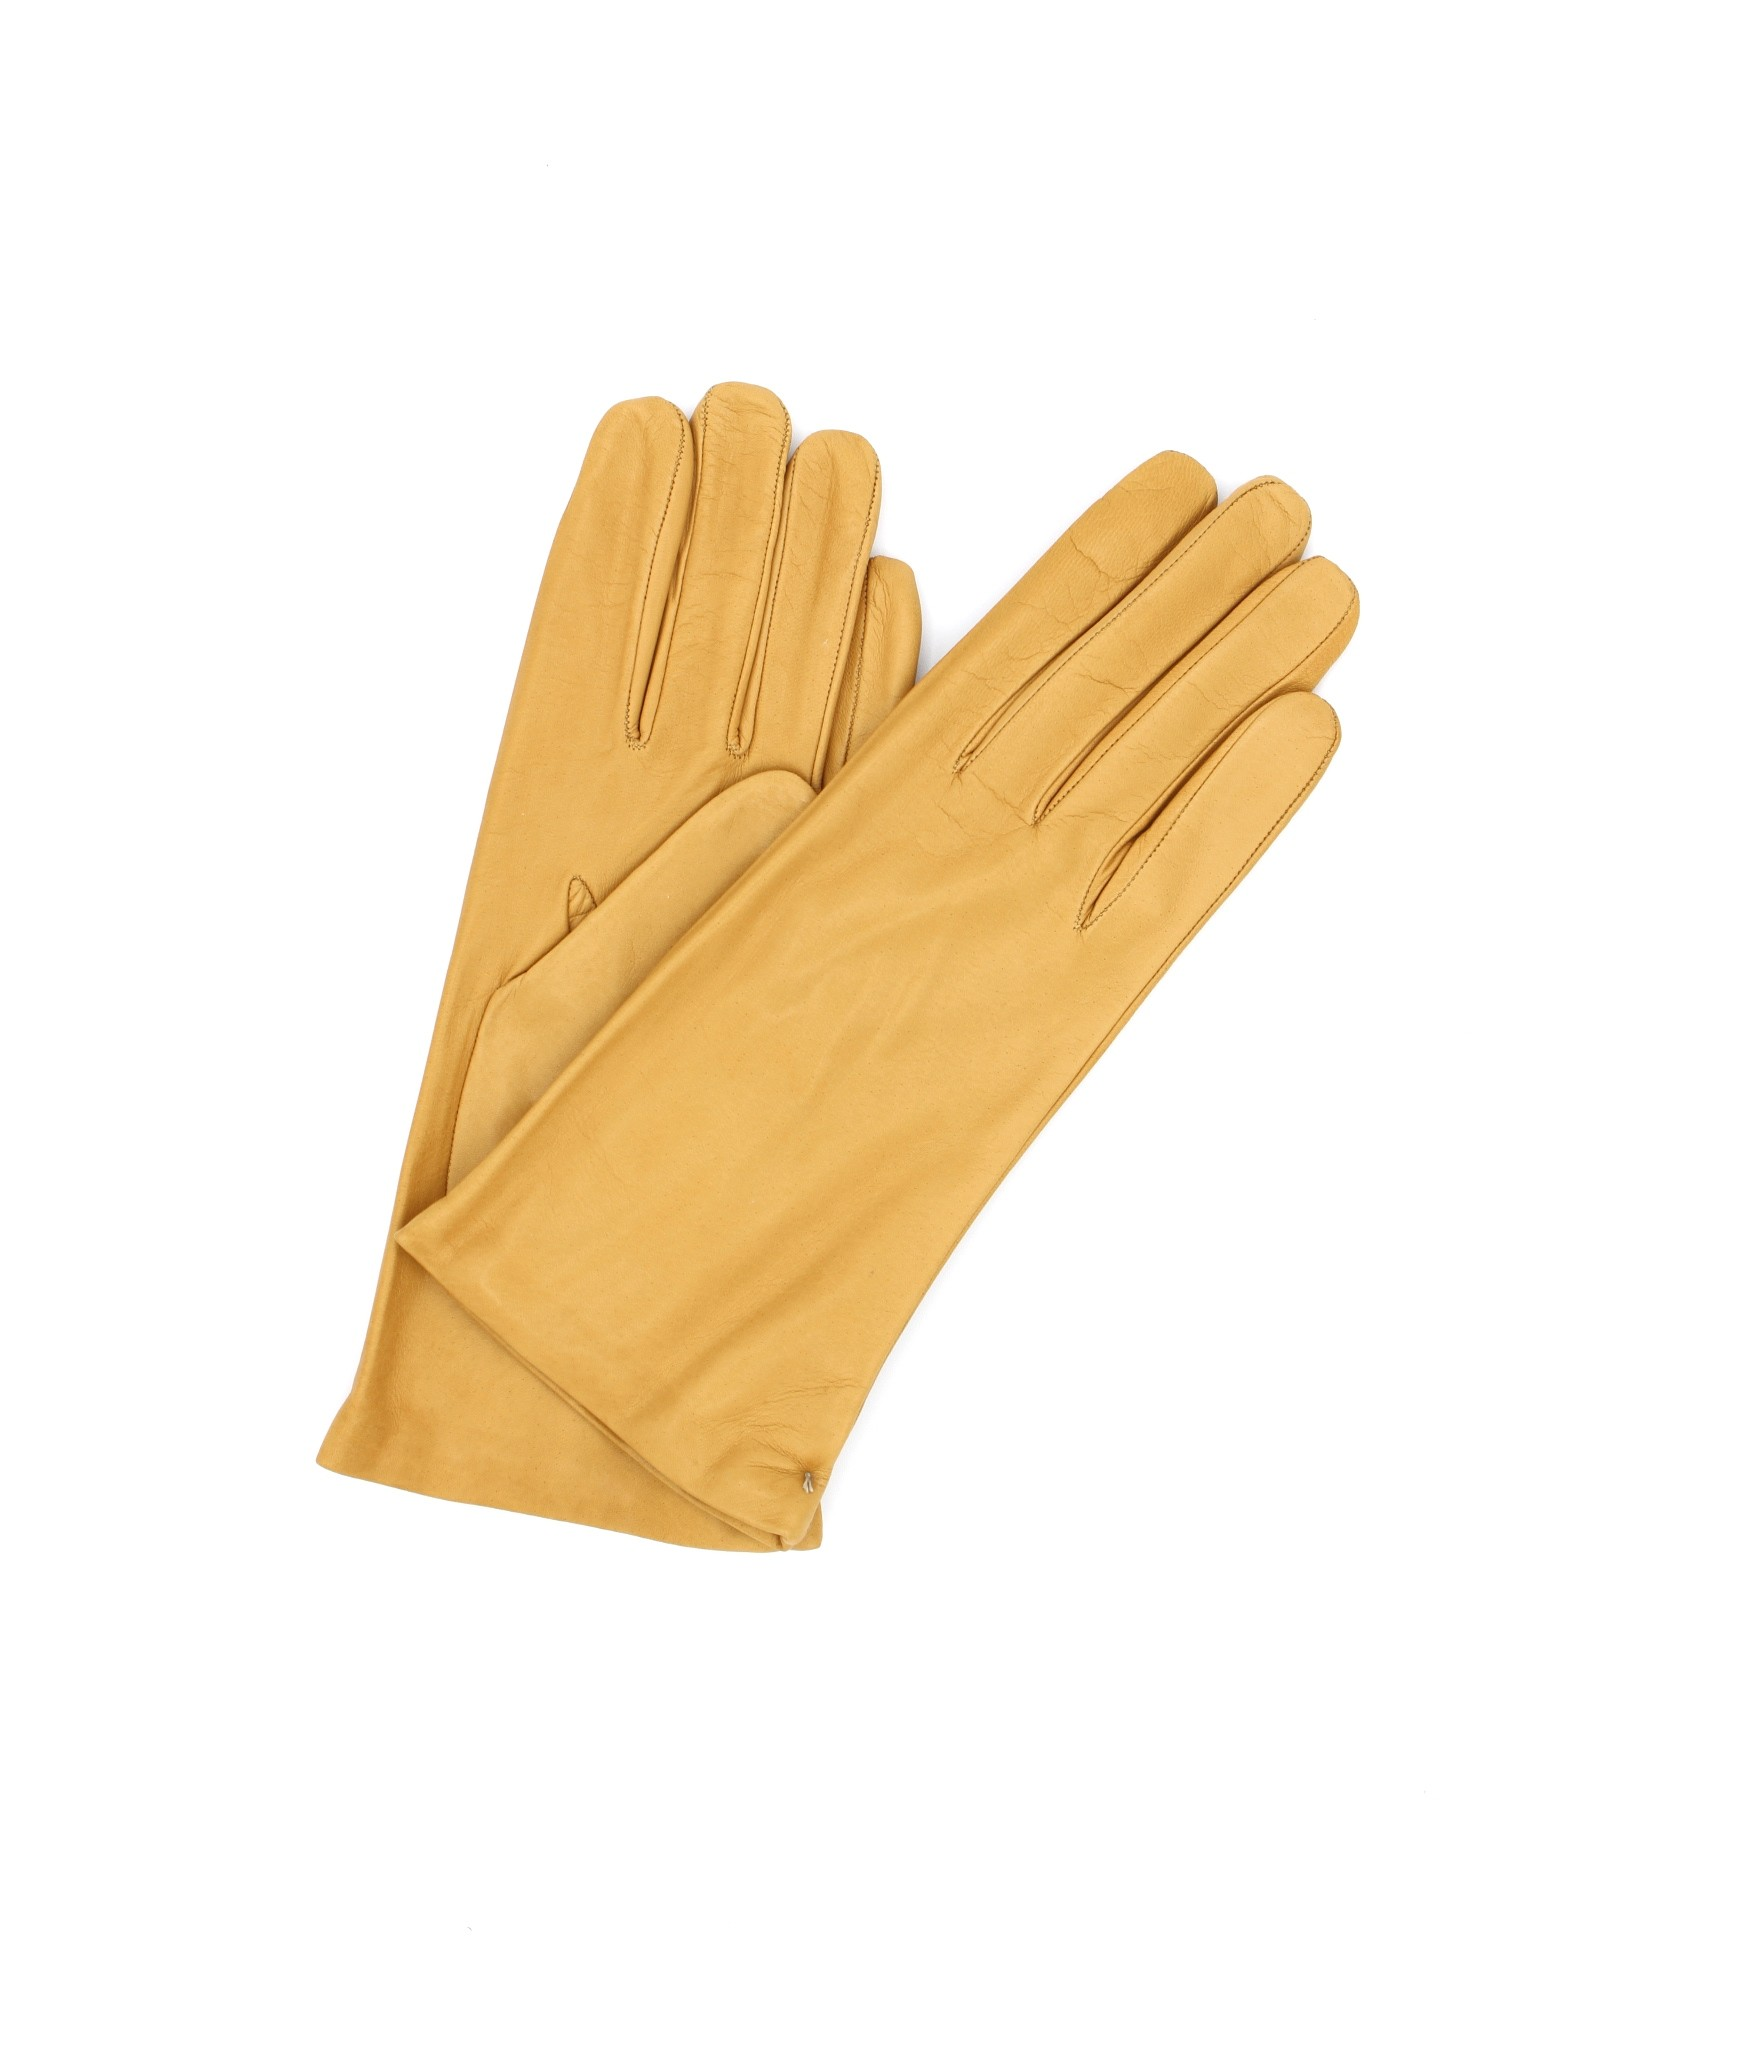 Nappa leather gloves Cashmere lined Cookie Sermoneta Gloves